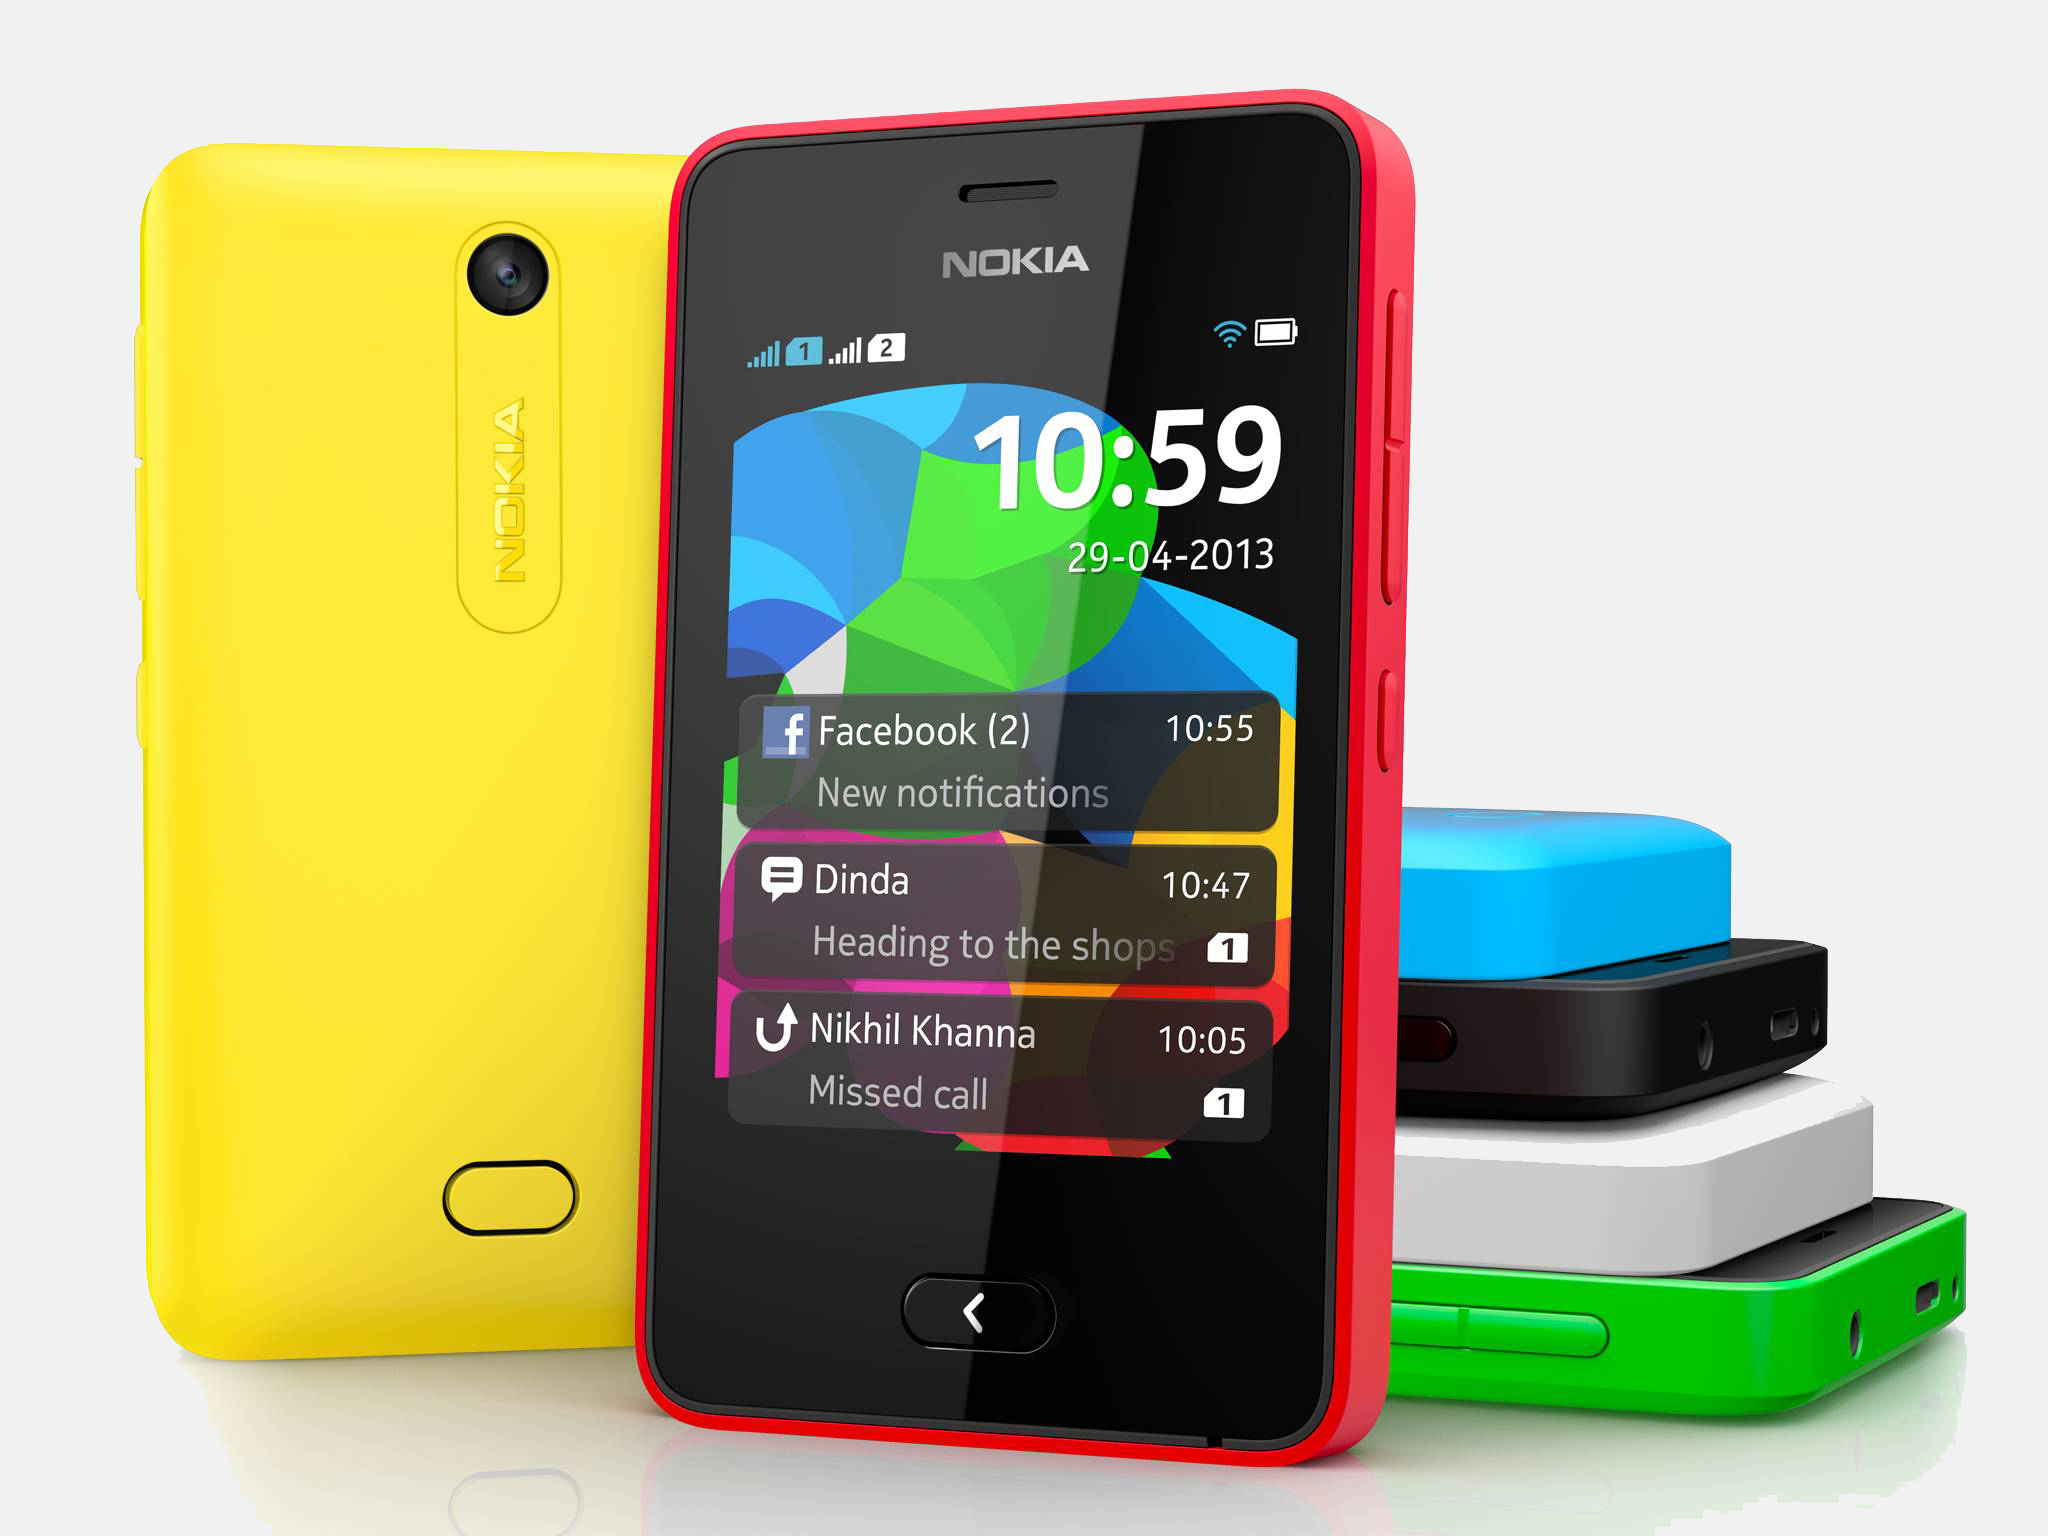 Can The Nokia Asha Succeed As An On-Ramp To Windows Phone?